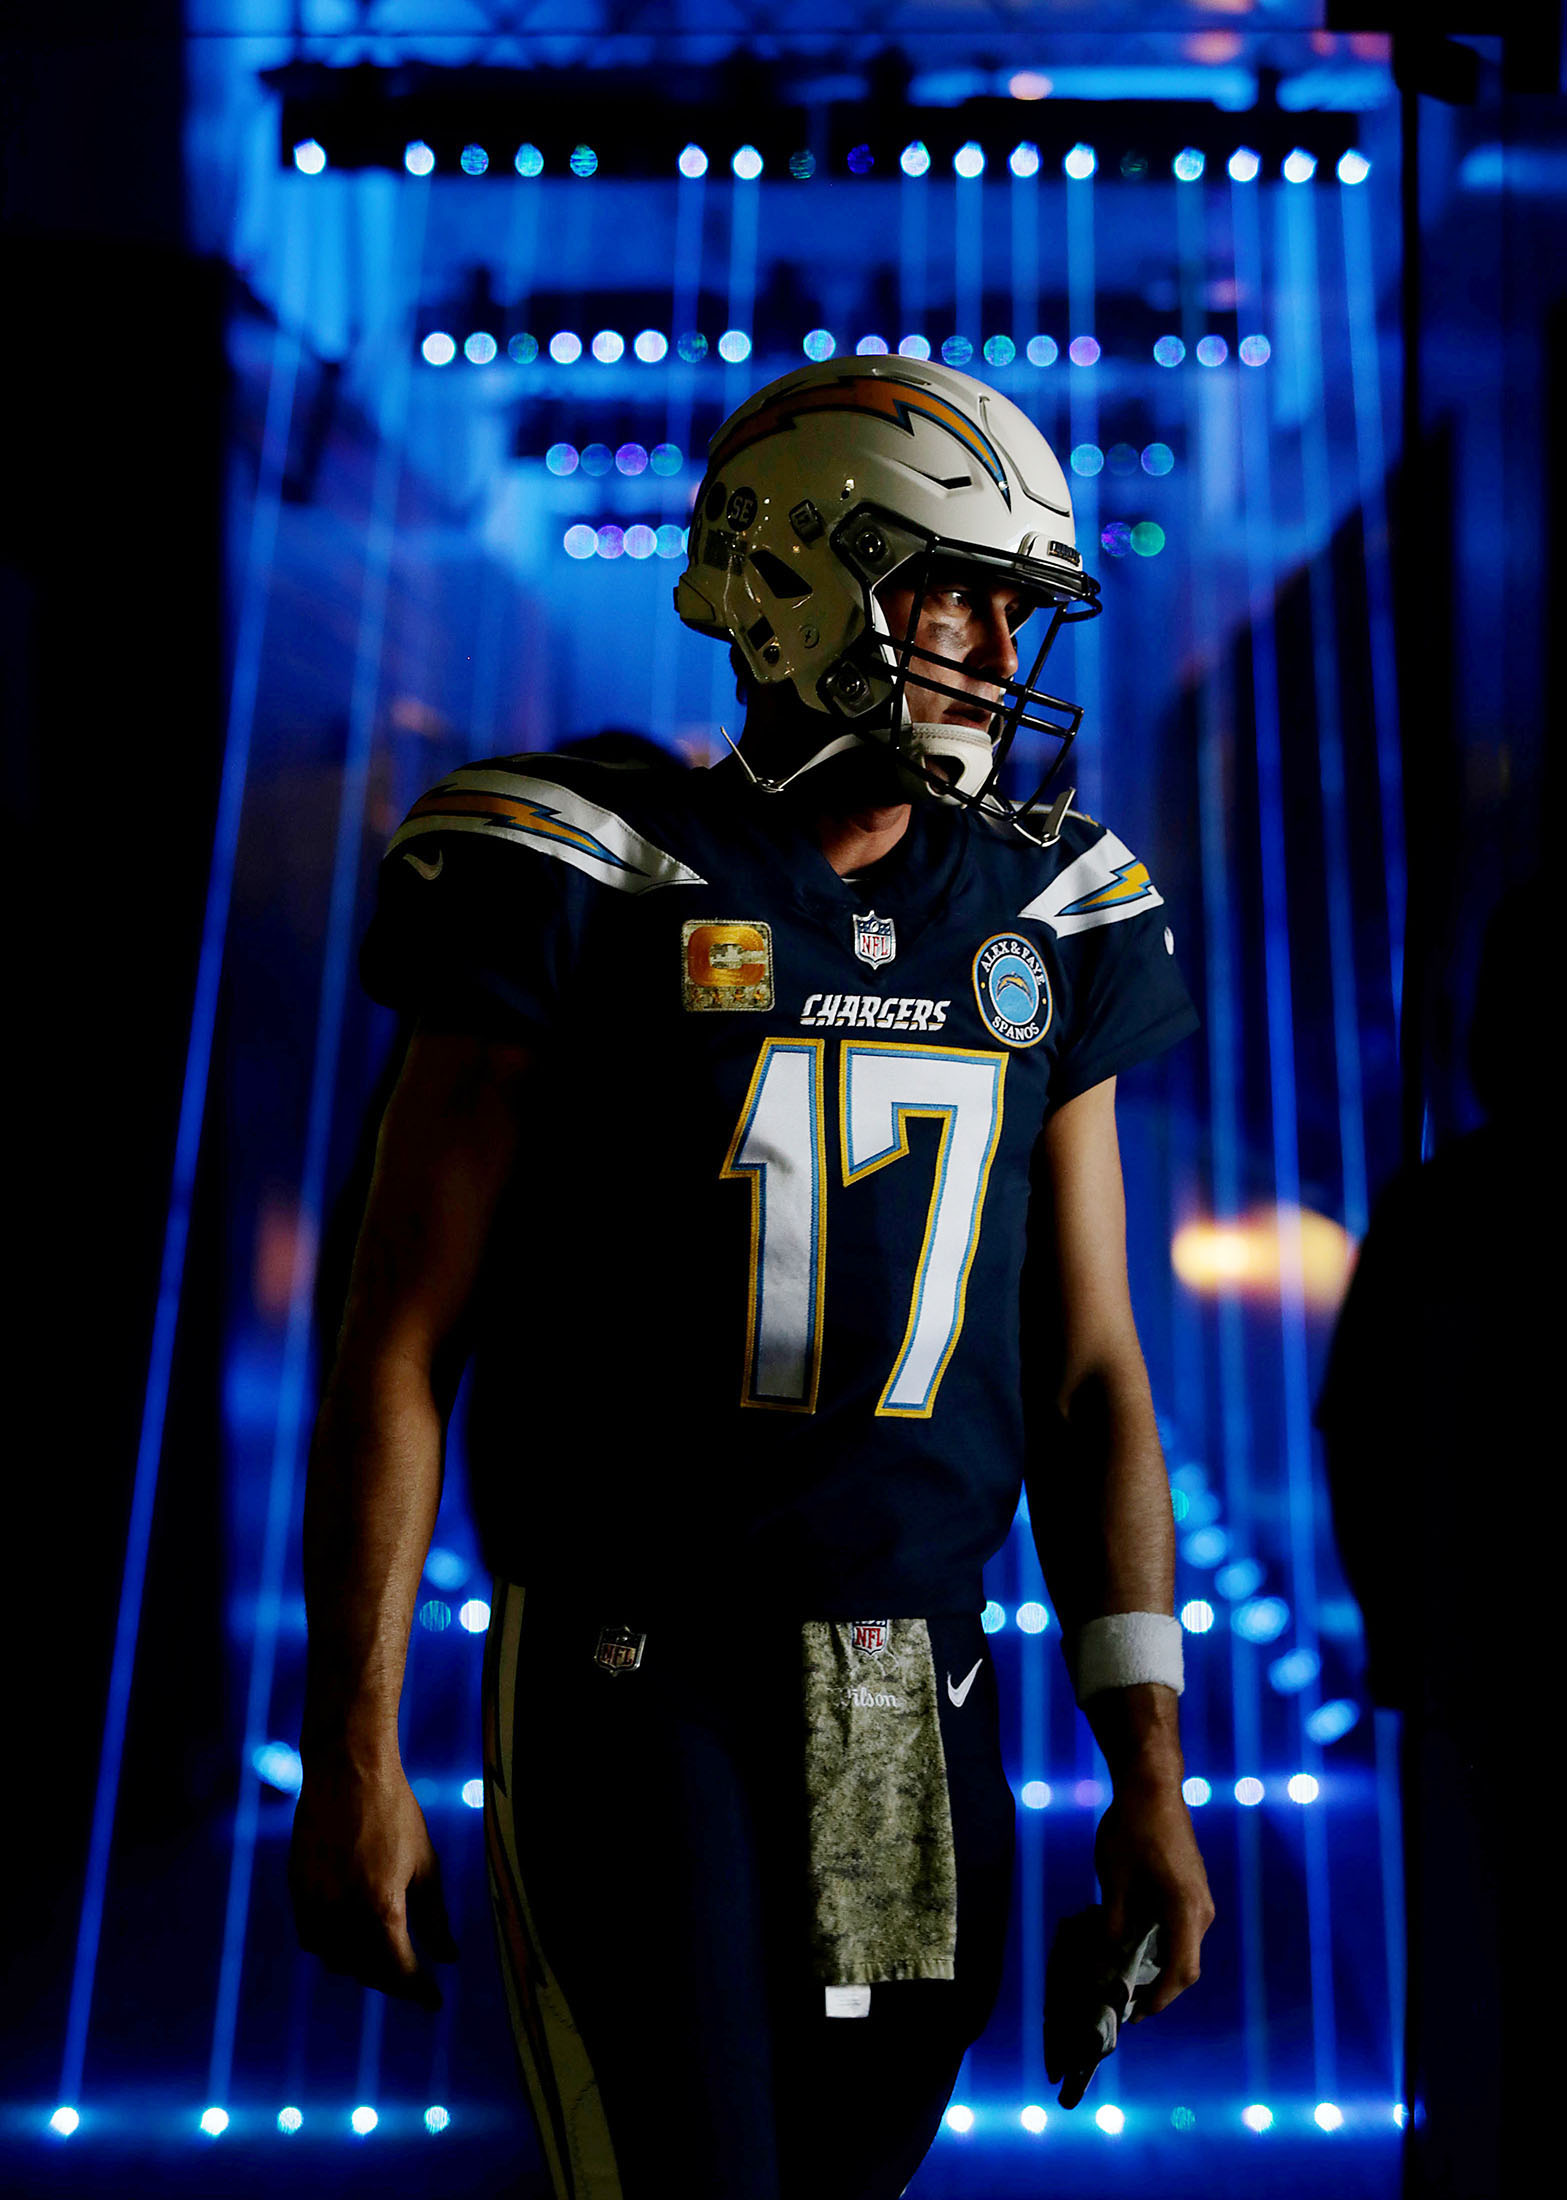 Los Angeles Chargers quarterback Philip Rivers #17 heads to the tunnel for player introductions before the first half of the game at StubHub Center in Carson on Sunday, November 18, 2018.